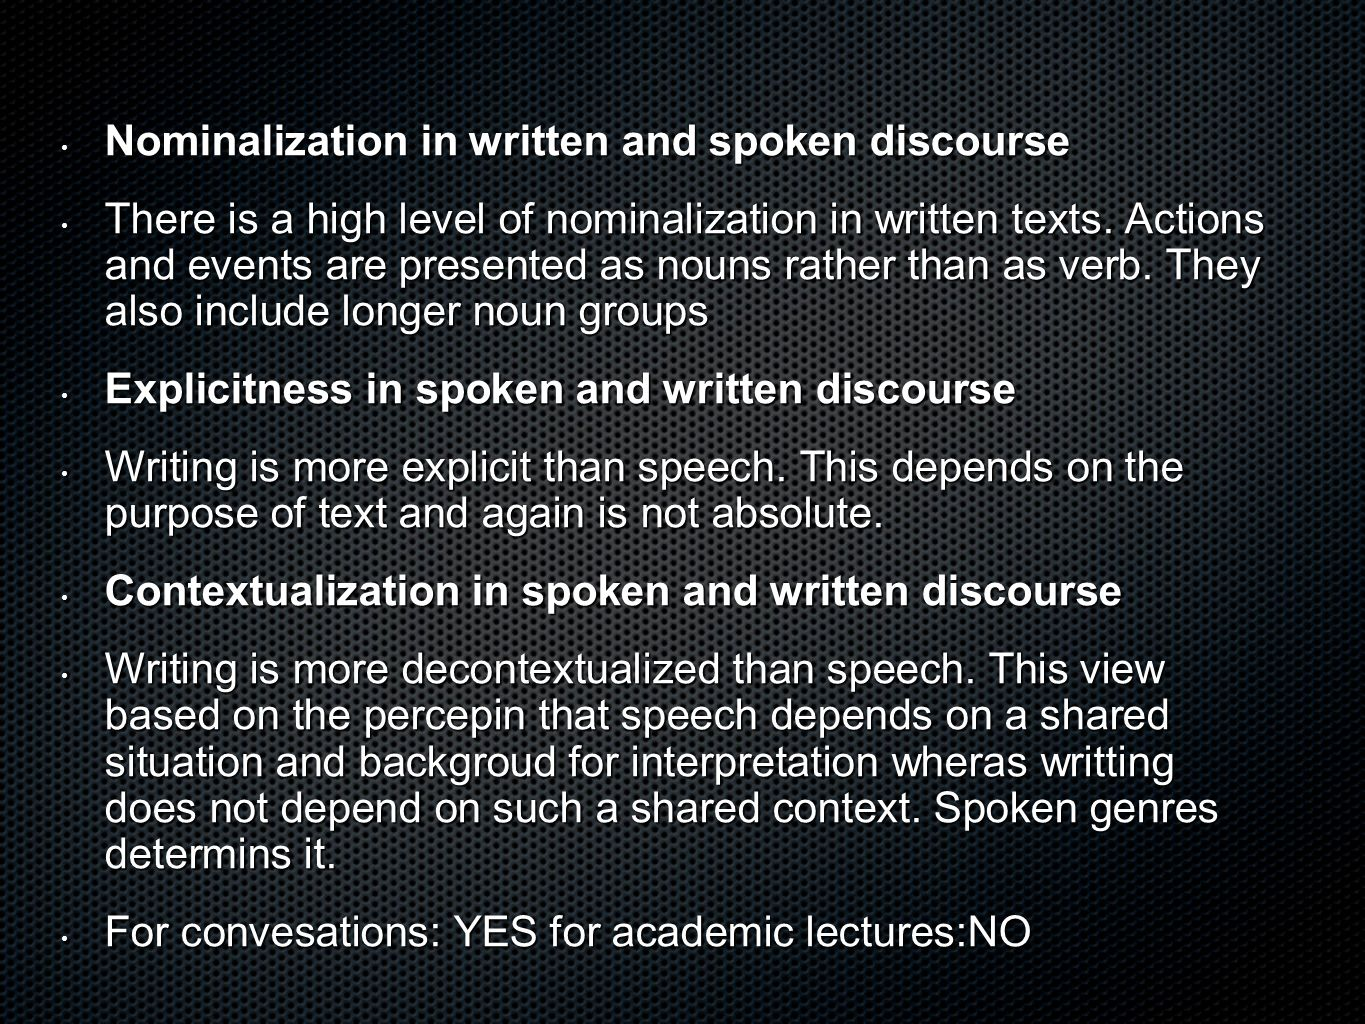 Nominalization in written and spoken discourse